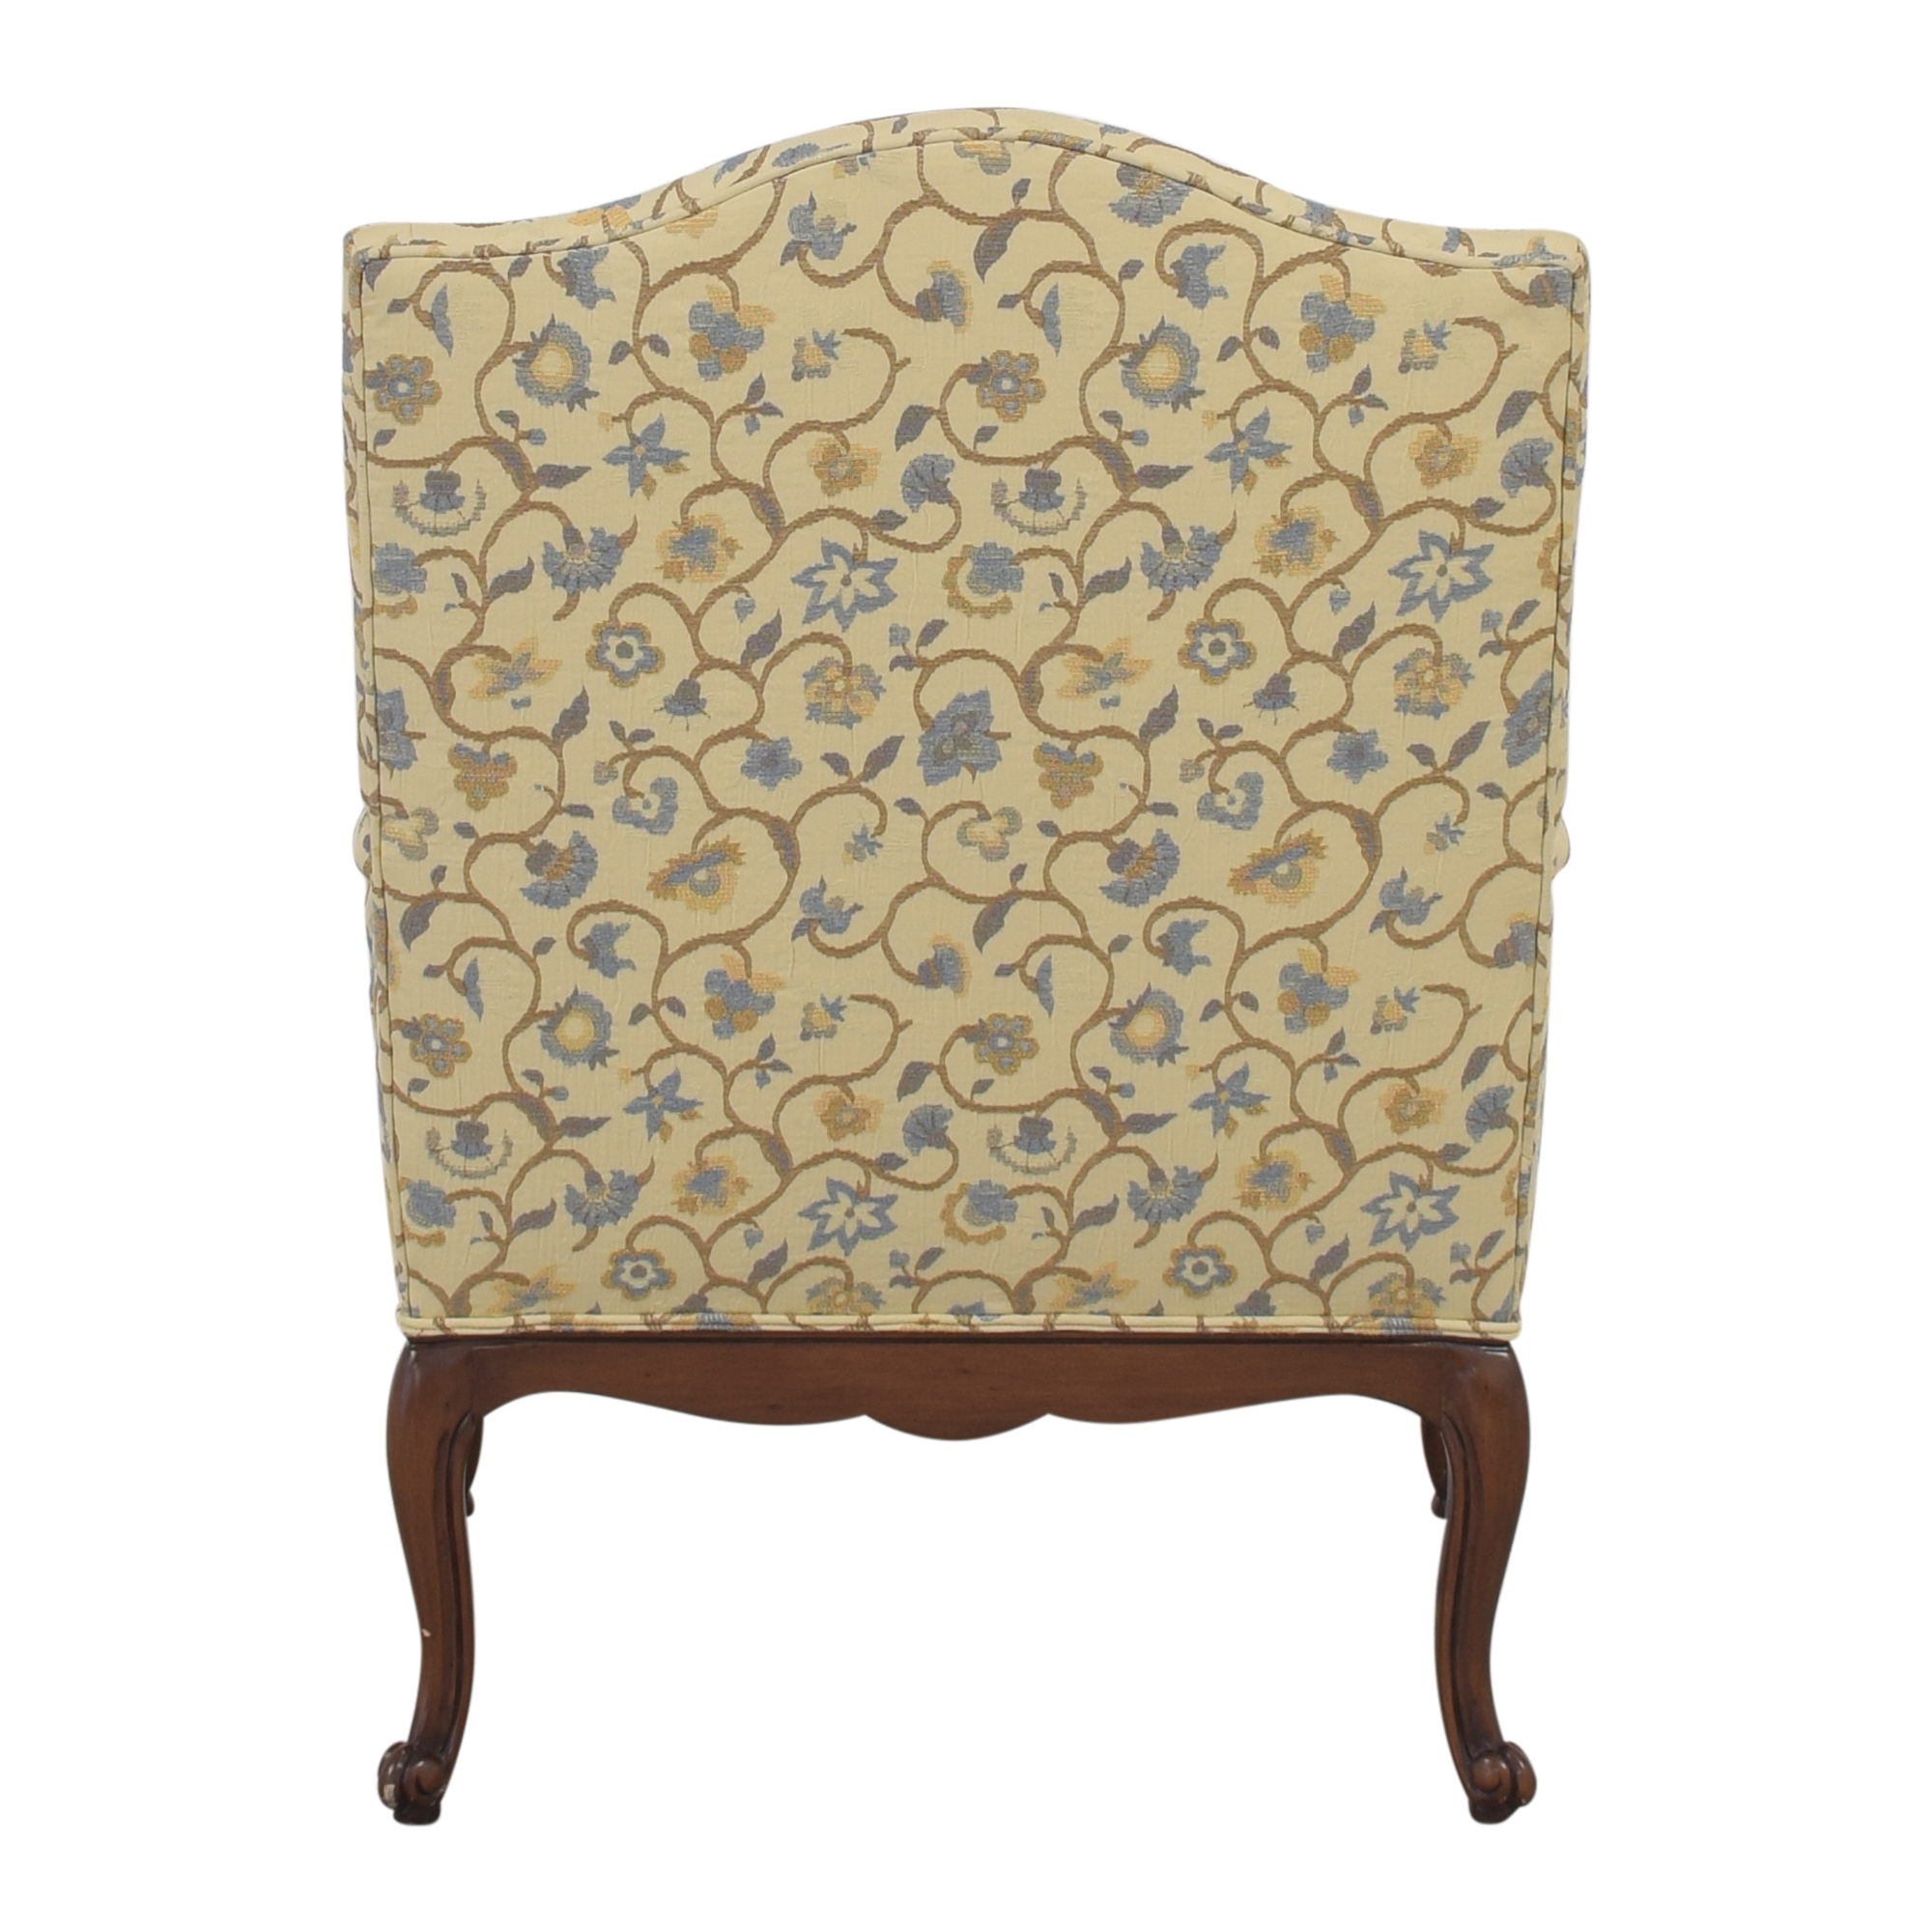 buy Kravet Upholstered Chair Kravet Accent Chairs